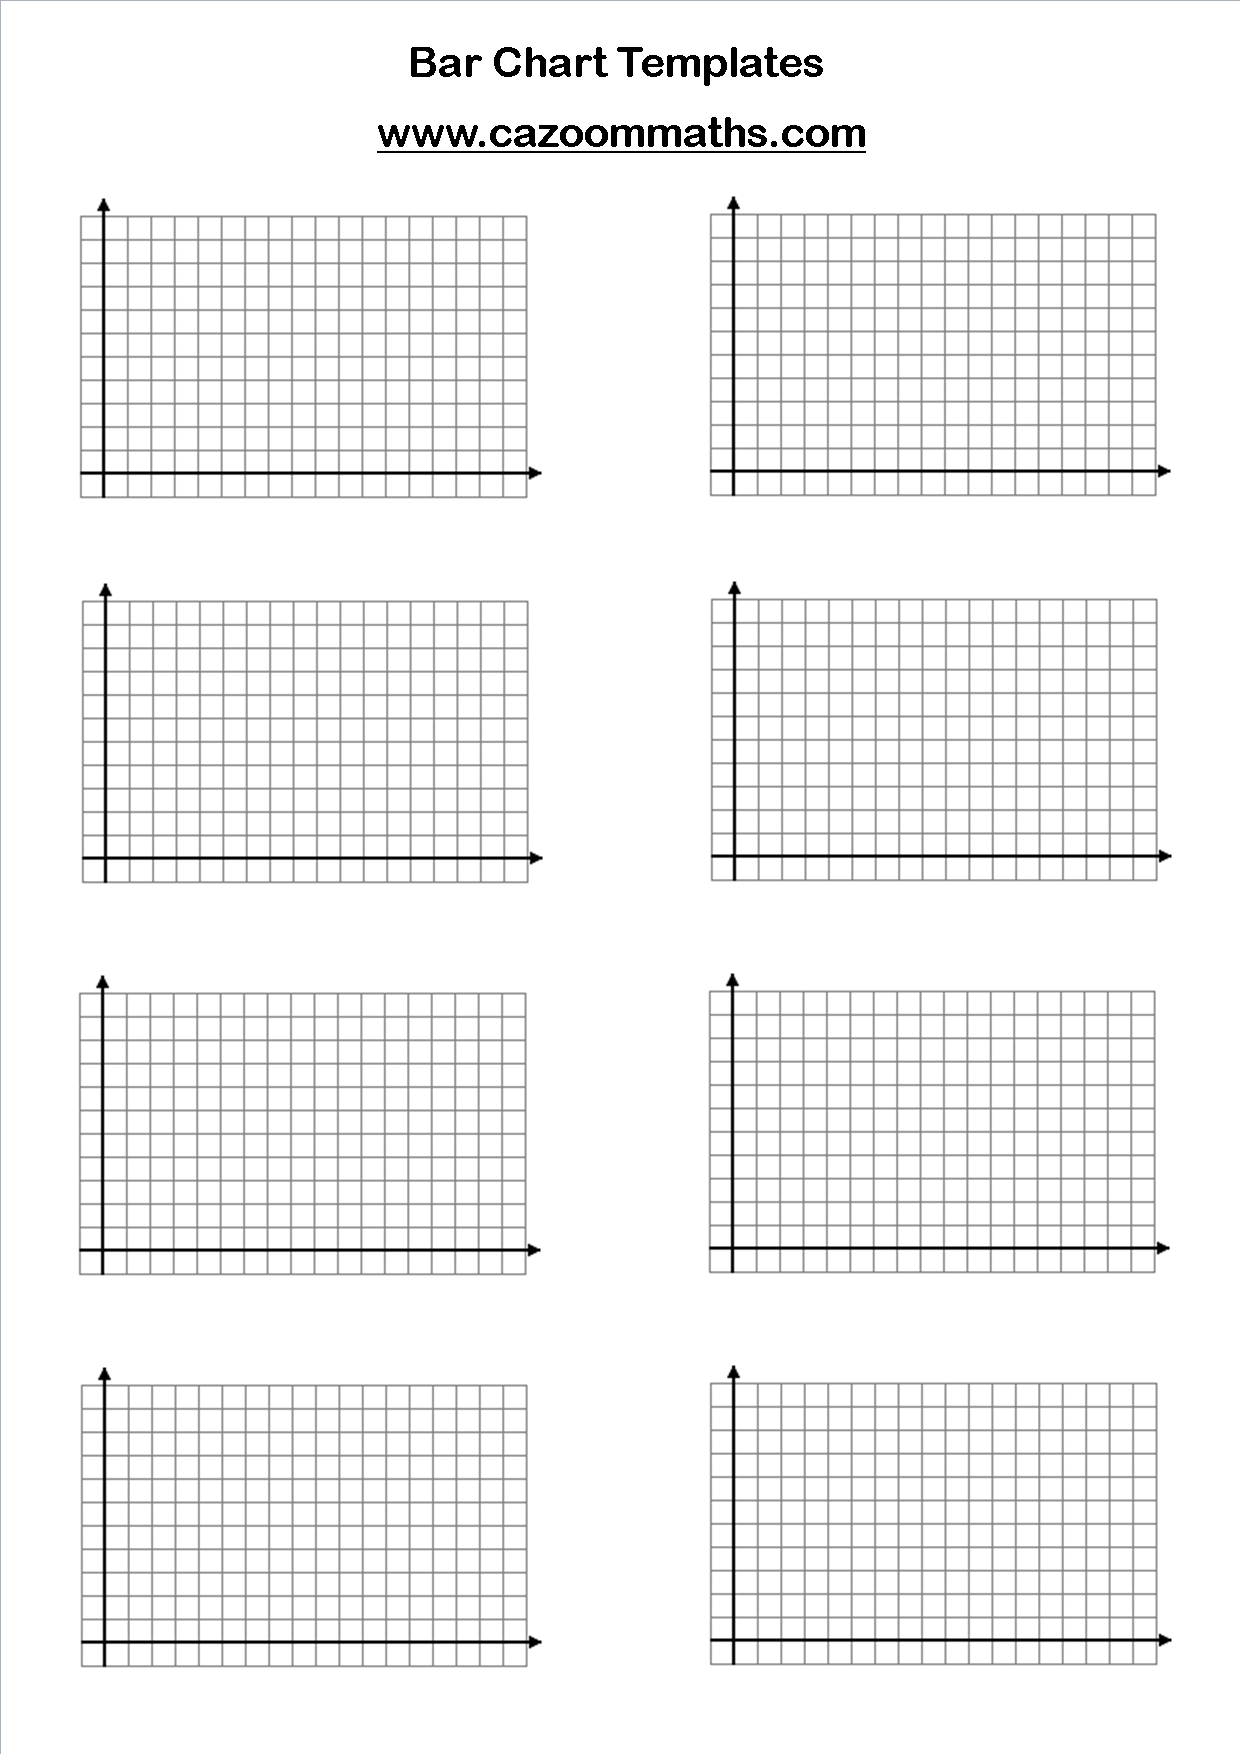 Pie Charts, Bar Charts and Line Graphs, Maths worksheets